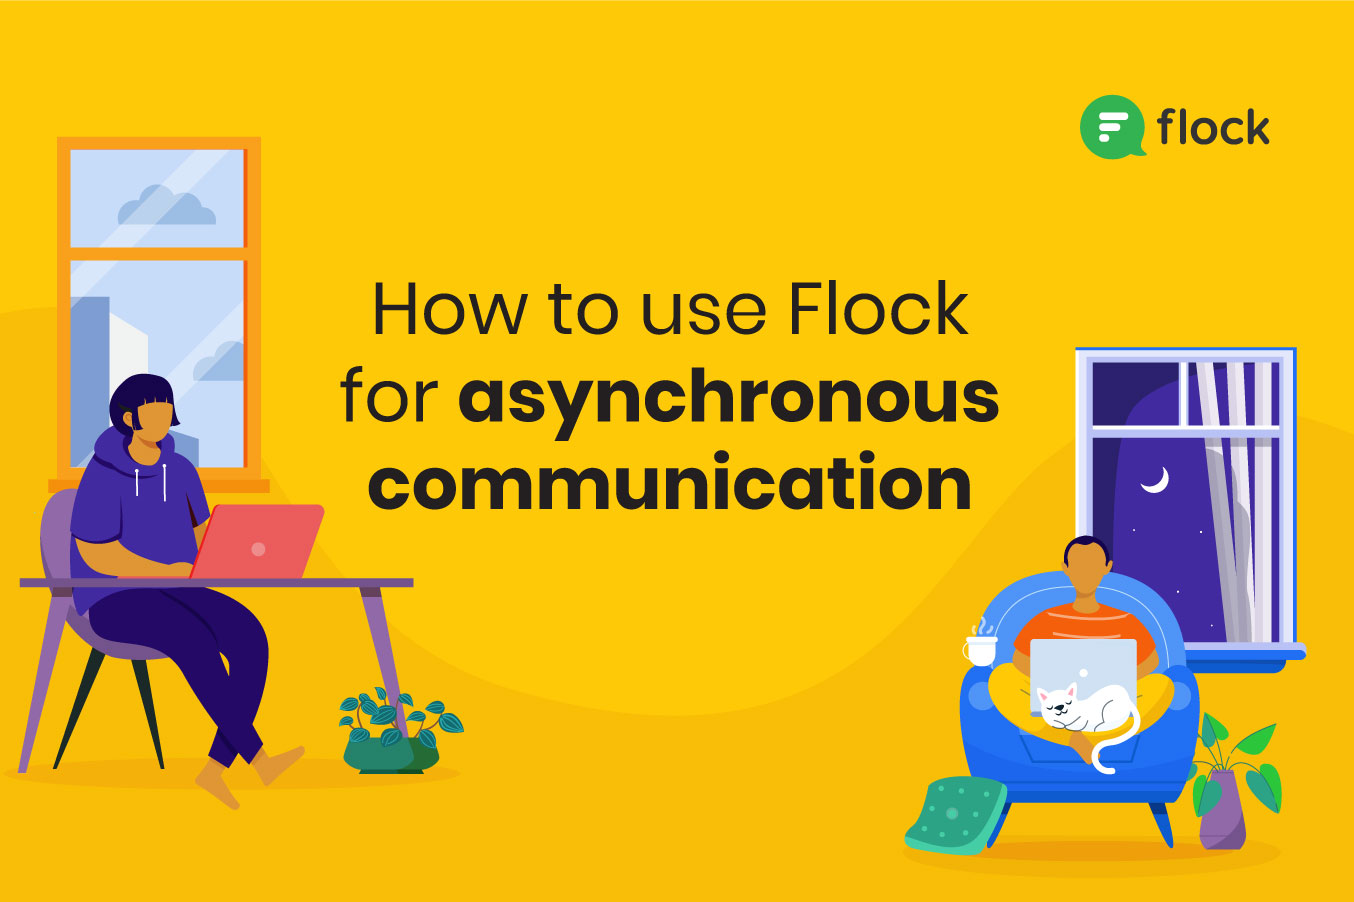 Using Flock for async communications